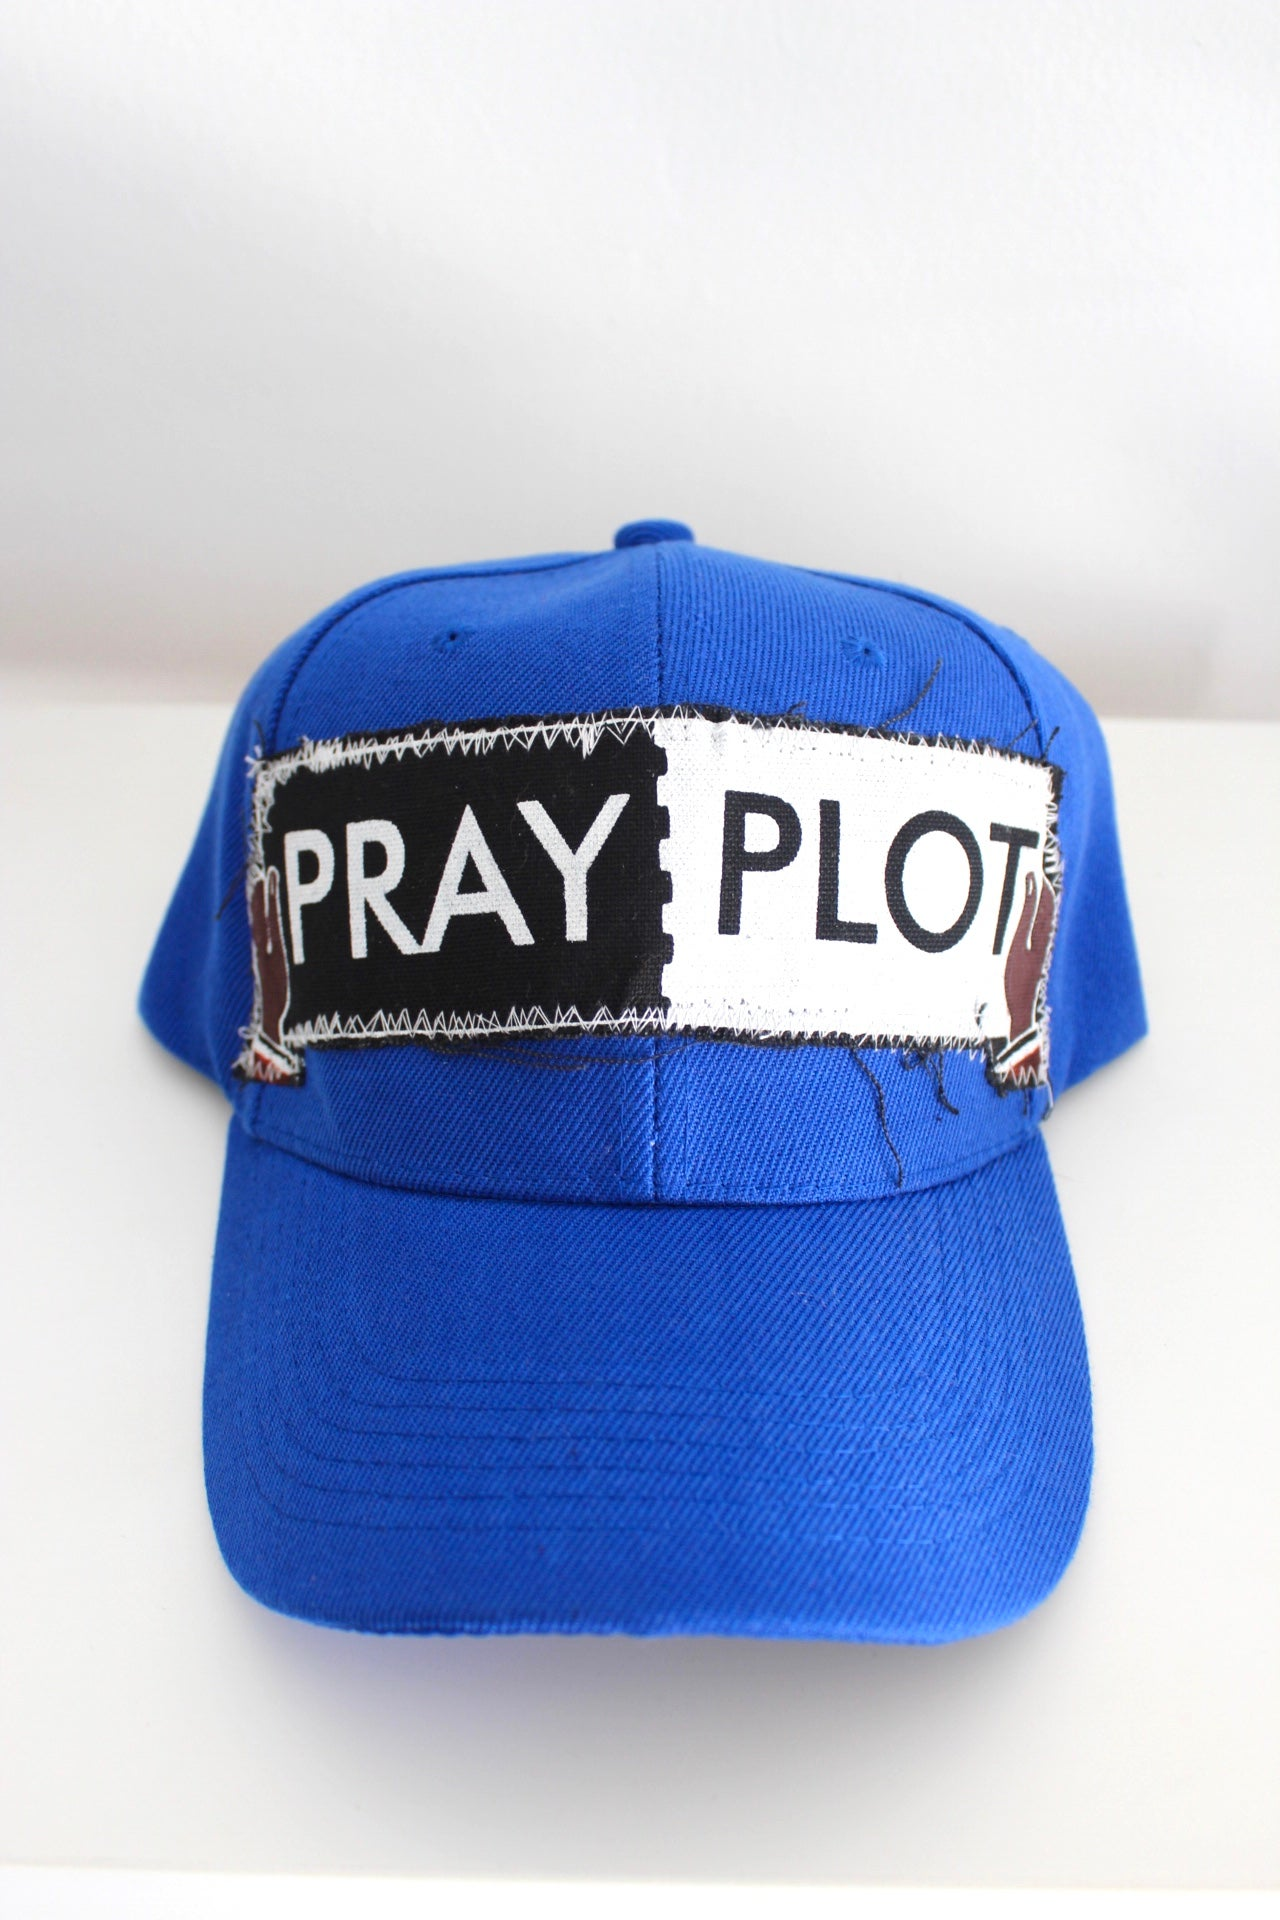 Image of post up baseball cap in blue